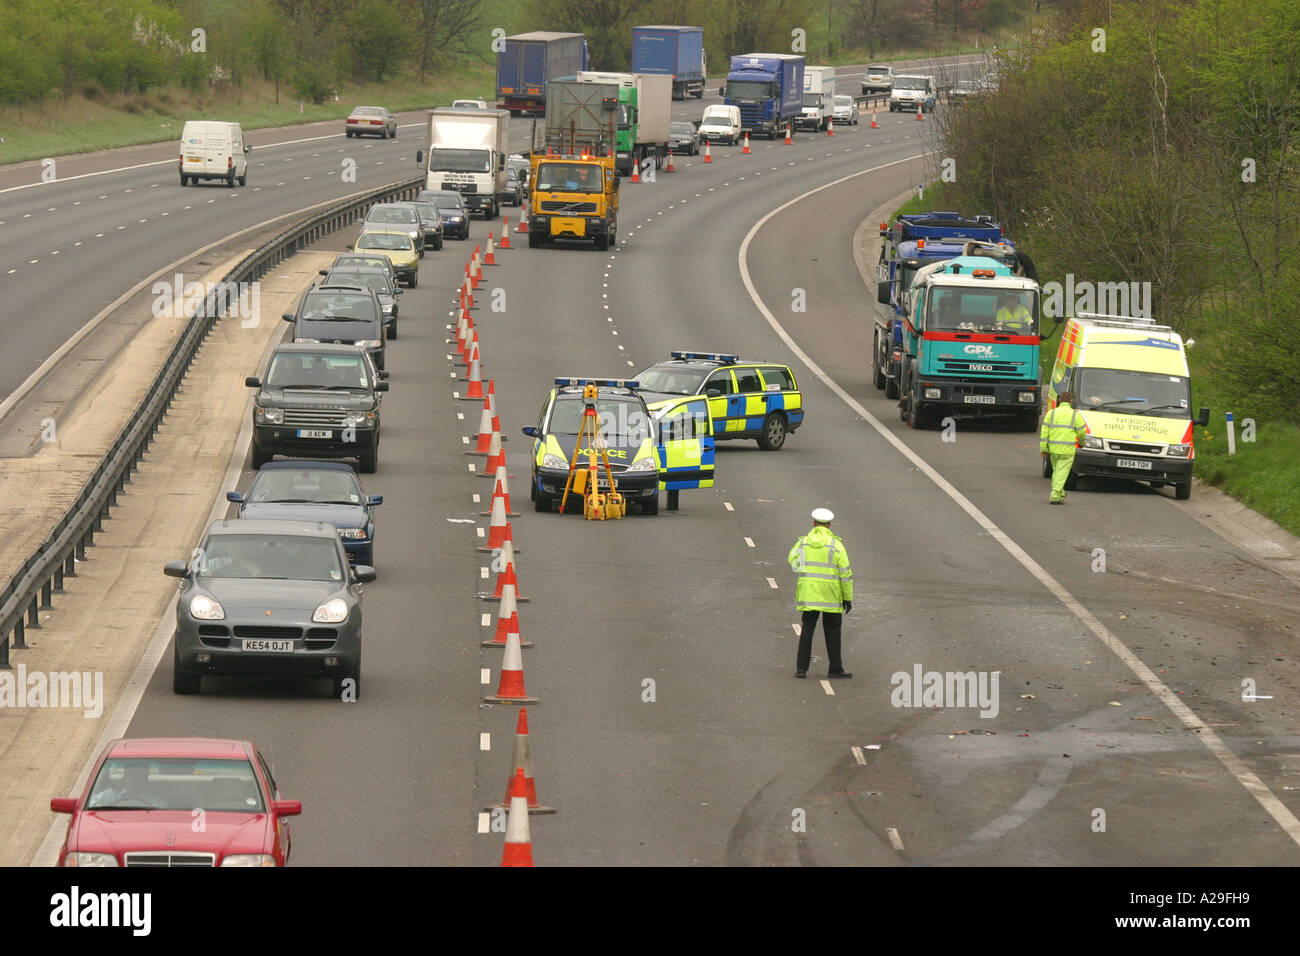 Traffic Cones Motorway Stock Photos & Traffic Cones Motorway Stock